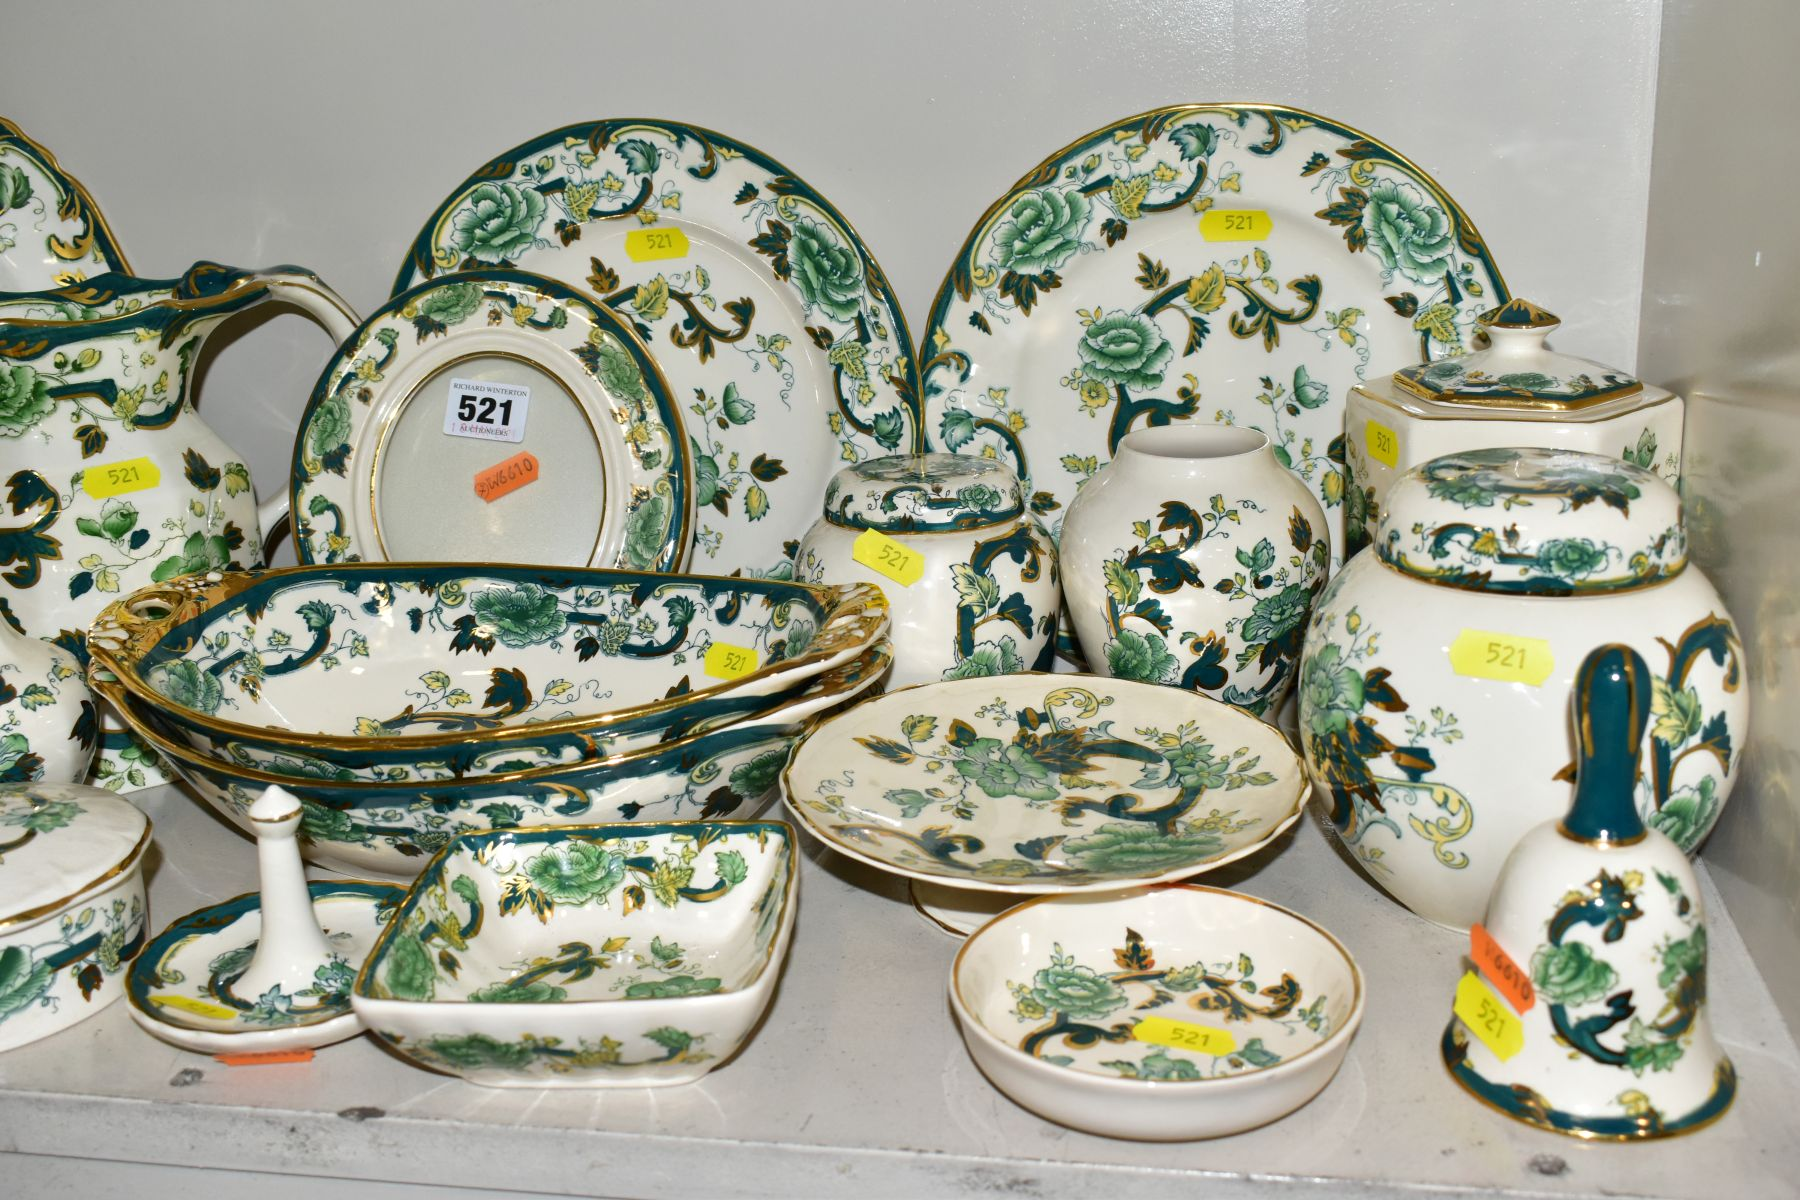 A COLLECTION OF MASONS IRONSTONE 'CHARTREUSE' PATTERN PLATES, JUGS, BOWLS, GINGER JARS, etc, - Image 6 of 7